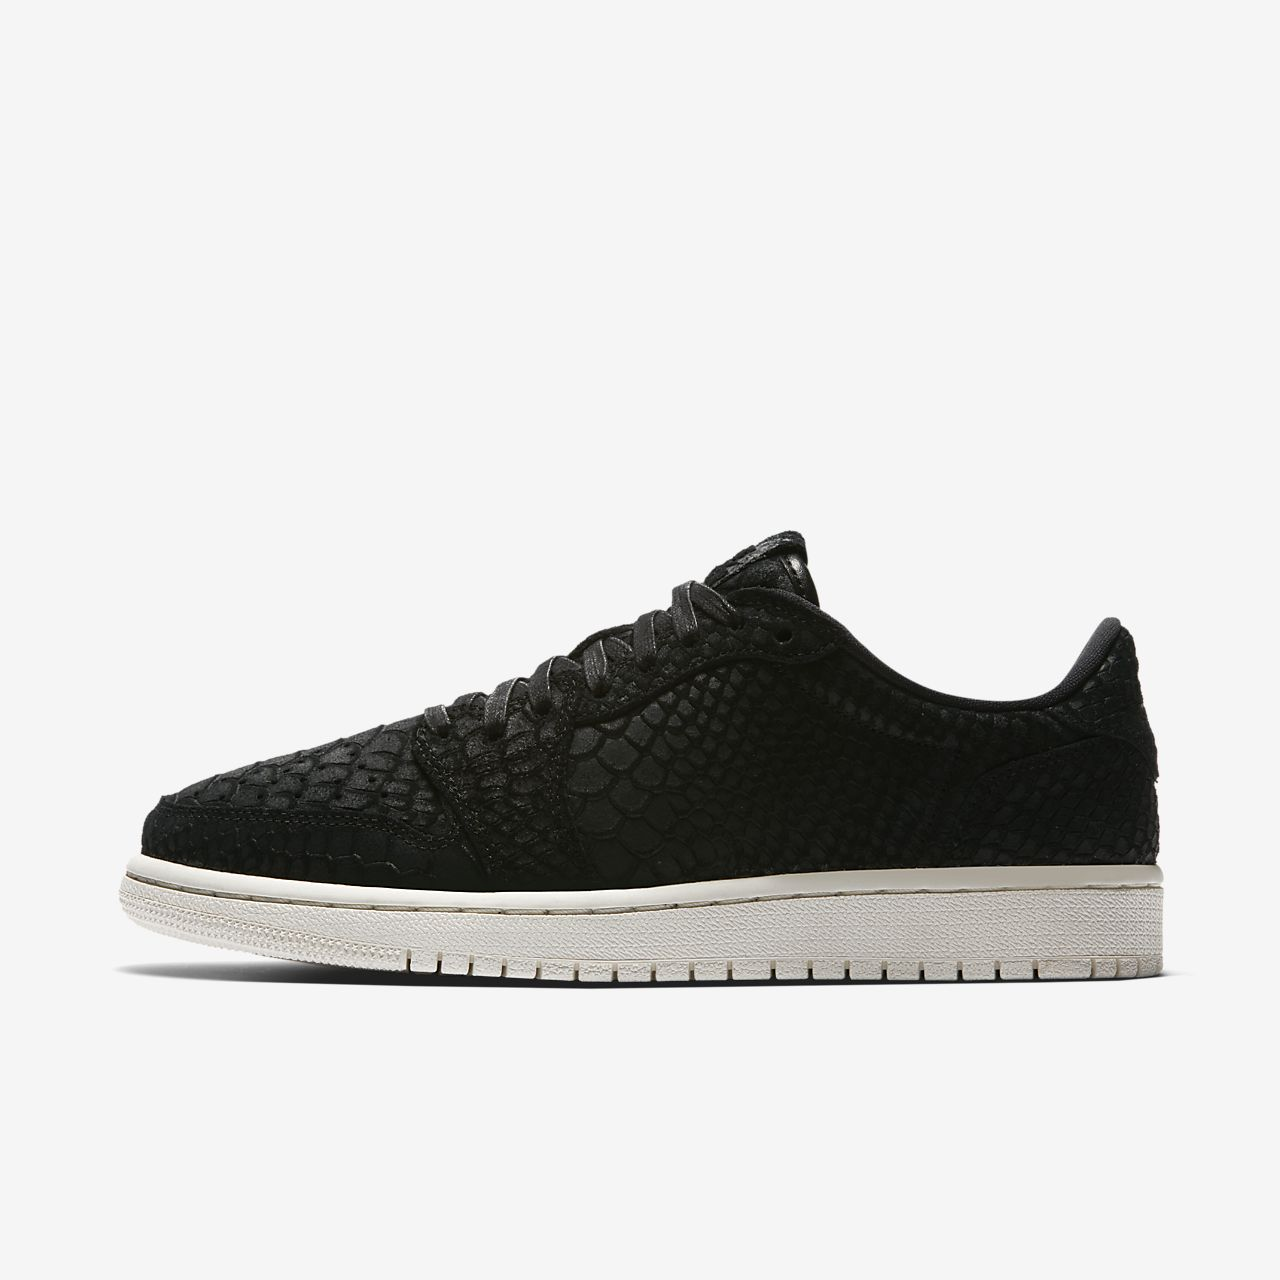 nike air jordan retro 1 low nz